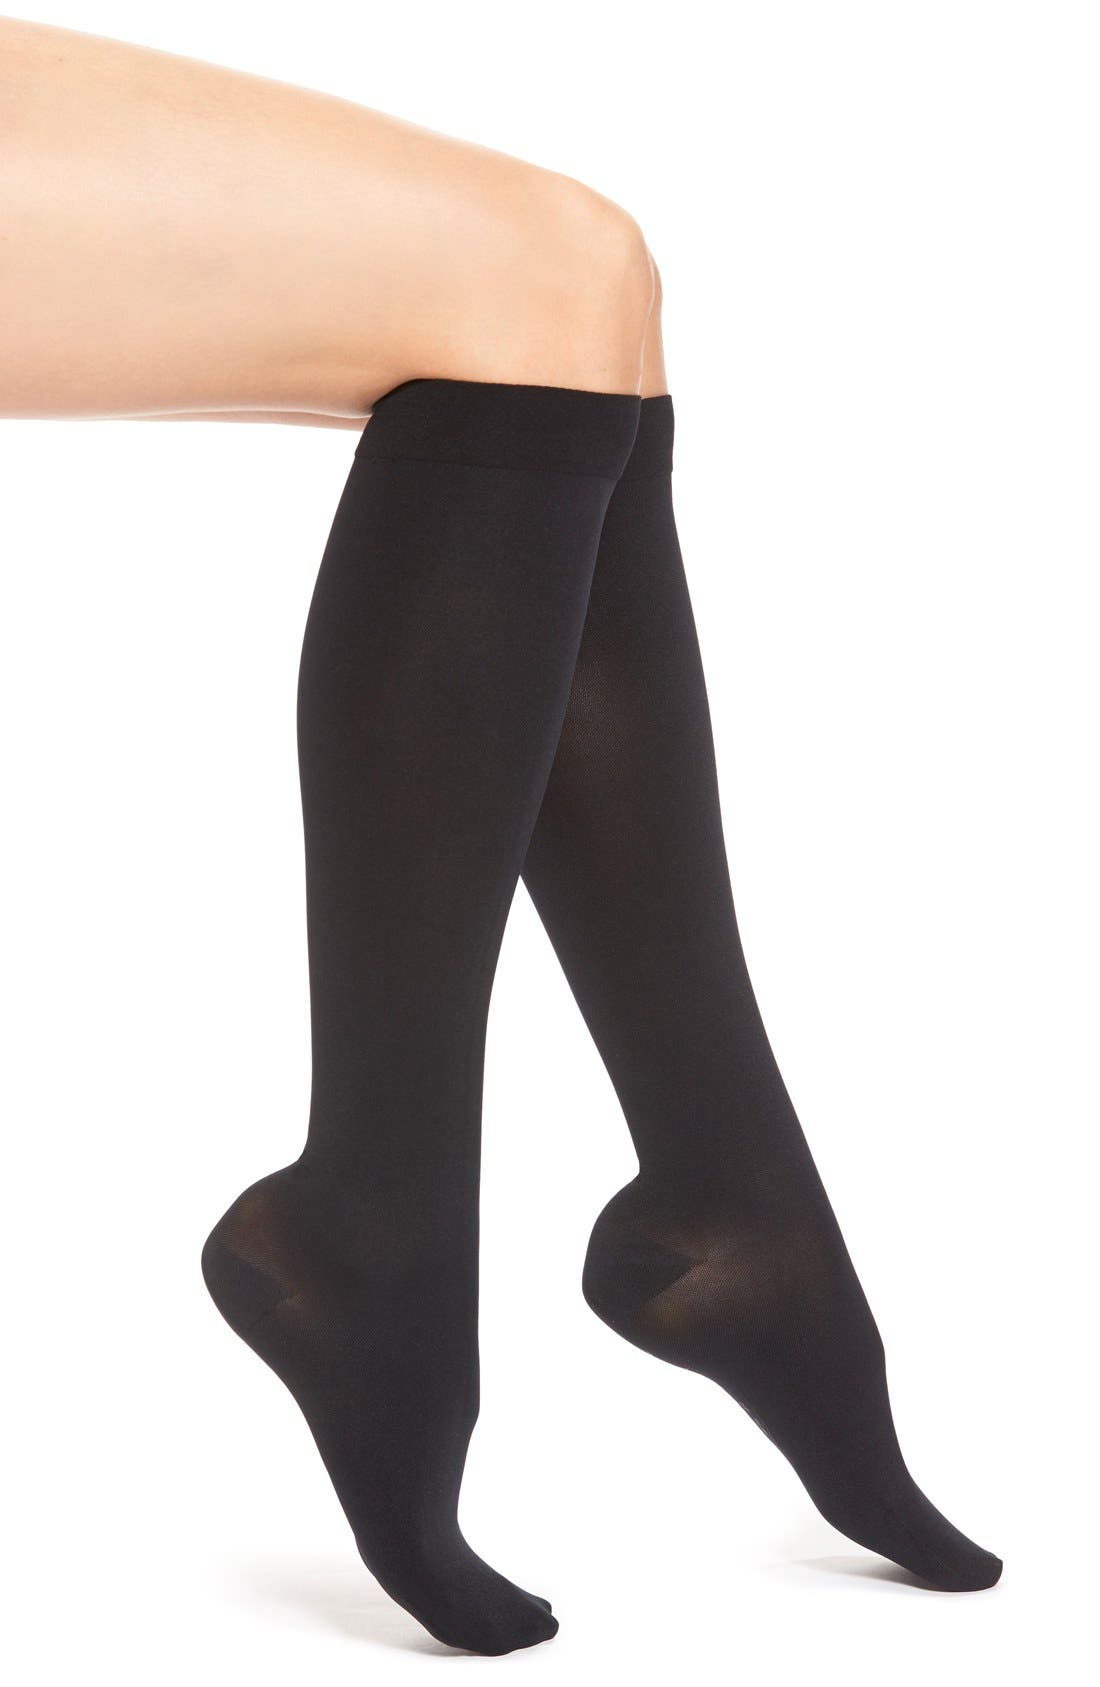 ITEM M6 Opaque Compression Knee High Socks in Black